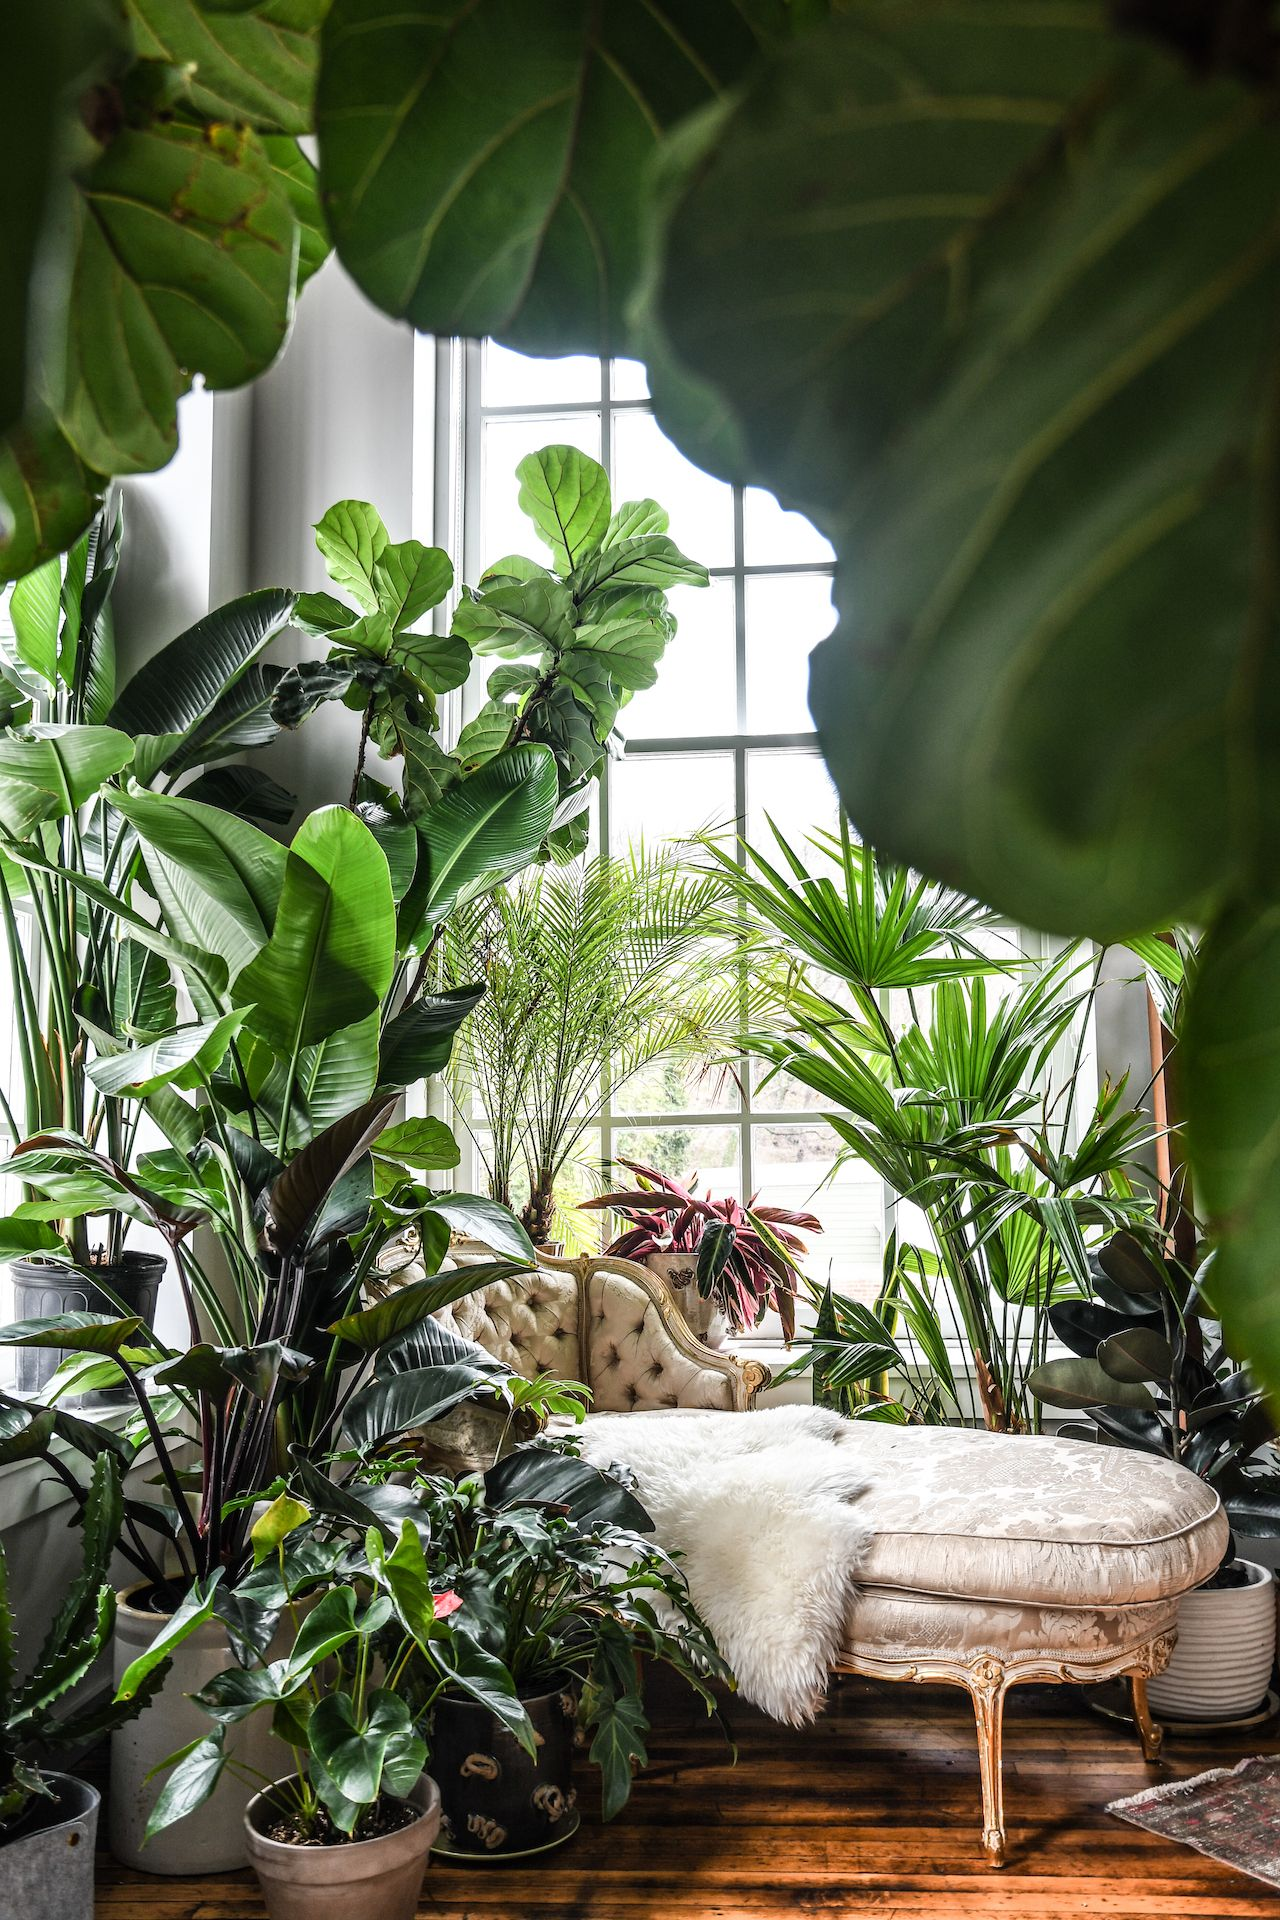 The 30 Best Indoor Plants for Apartments to Buy Online